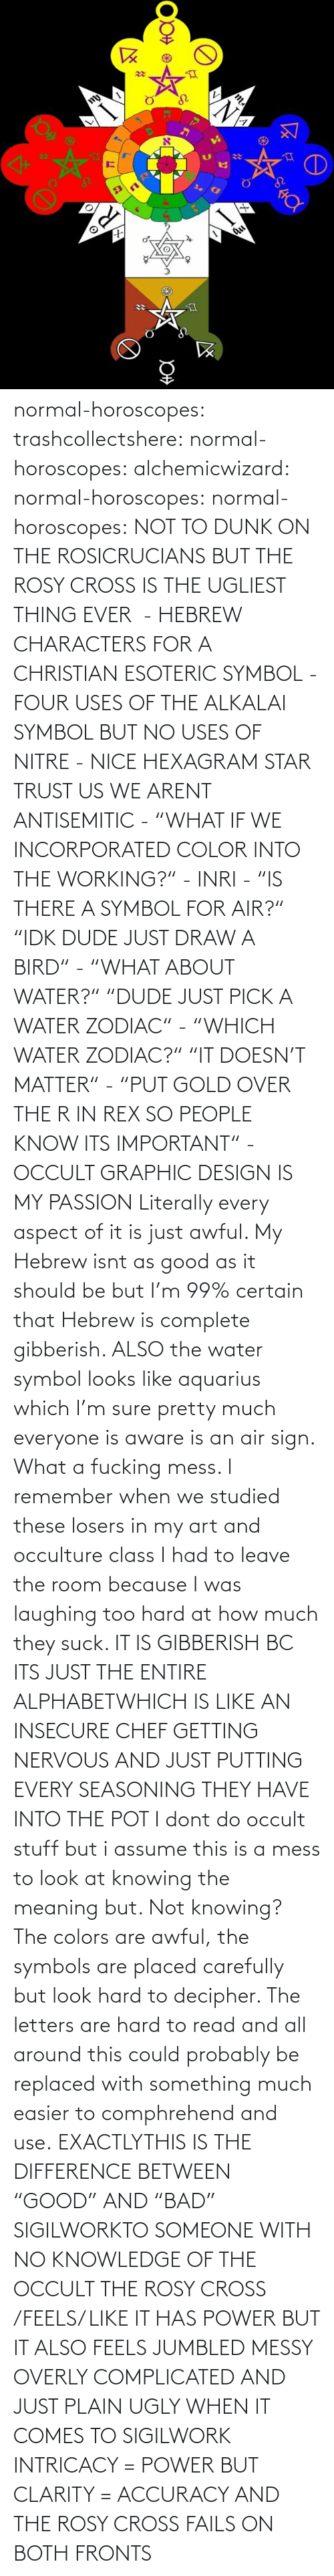 "Like It: normal-horoscopes:  trashcollectshere: normal-horoscopes:   alchemicwizard:  normal-horoscopes:  normal-horoscopes: NOT TO DUNK ON THE ROSICRUCIANS BUT THE ROSY CROSS IS THE UGLIEST THING EVER  - HEBREW CHARACTERS FOR A CHRISTIAN ESOTERIC SYMBOL - FOUR USES OF THE ALKALAI SYMBOL BUT NO USES OF NITRE - NICE HEXAGRAM STAR TRUST US WE ARENT ANTISEMITIC - ""WHAT IF WE INCORPORATED COLOR INTO THE WORKING?"" - INRI - ""IS THERE A SYMBOL FOR AIR?"" ""IDK DUDE JUST DRAW A BIRD"" - ""WHAT ABOUT WATER?"" ""DUDE JUST PICK A WATER ZODIAC"" - ""WHICH WATER ZODIAC?"" ""IT DOESN'T MATTER"" - ""PUT GOLD OVER THE R IN REX SO PEOPLE KNOW ITS IMPORTANT"" - OCCULT GRAPHIC DESIGN IS MY PASSION  Literally every aspect of it is just awful. My Hebrew isnt as good as it should be but I'm 99% certain that Hebrew is complete gibberish.  ALSO the water symbol looks like aquarius which I'm sure pretty much everyone is aware is an air sign. What a fucking mess.  I remember when we studied these losers in my art and occulture class I had to leave the room because I was laughing too hard at how much they suck.   IT IS GIBBERISH BC ITS JUST THE ENTIRE ALPHABETWHICH IS LIKE AN INSECURE CHEF GETTING NERVOUS AND JUST PUTTING EVERY SEASONING THEY HAVE INTO THE POT     I dont do occult stuff but i assume this is a mess to look at knowing the meaning but. Not knowing? The colors are awful, the symbols are placed carefully but look hard to decipher. The letters are hard to read and all around this could probably be replaced with something much easier to comphrehend and use.  EXACTLYTHIS IS THE DIFFERENCE BETWEEN ""GOOD"" AND ""BAD"" SIGILWORKTO SOMEONE WITH NO KNOWLEDGE OF THE OCCULT THE ROSY CROSS /FEELS/ LIKE IT HAS POWER BUT IT ALSO FEELS JUMBLED MESSY OVERLY COMPLICATED AND JUST PLAIN UGLY WHEN IT COMES TO SIGILWORK INTRICACY = POWER BUT CLARITY = ACCURACY AND THE ROSY CROSS FAILS ON BOTH FRONTS"